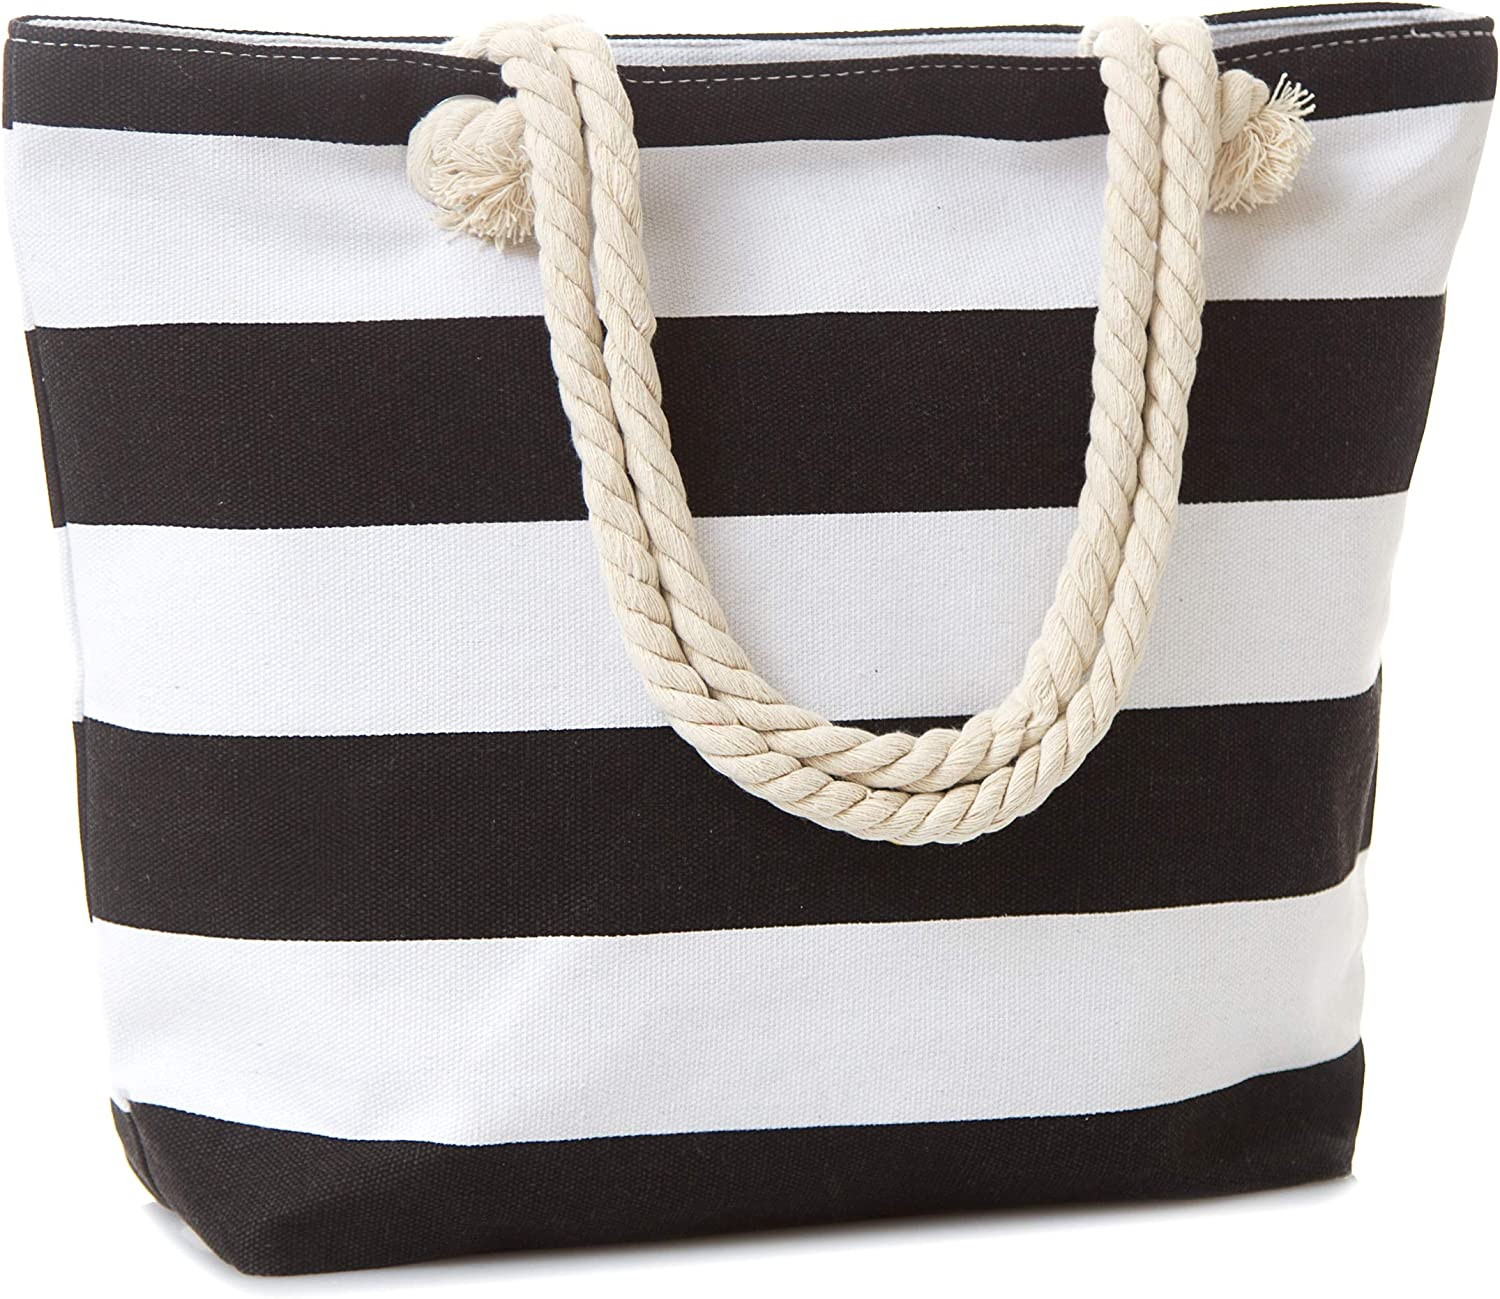 Leisureland Canvas Tote Beach Bag, Rope Handle Water Resistant Shoulder Bag (Black Stripe)